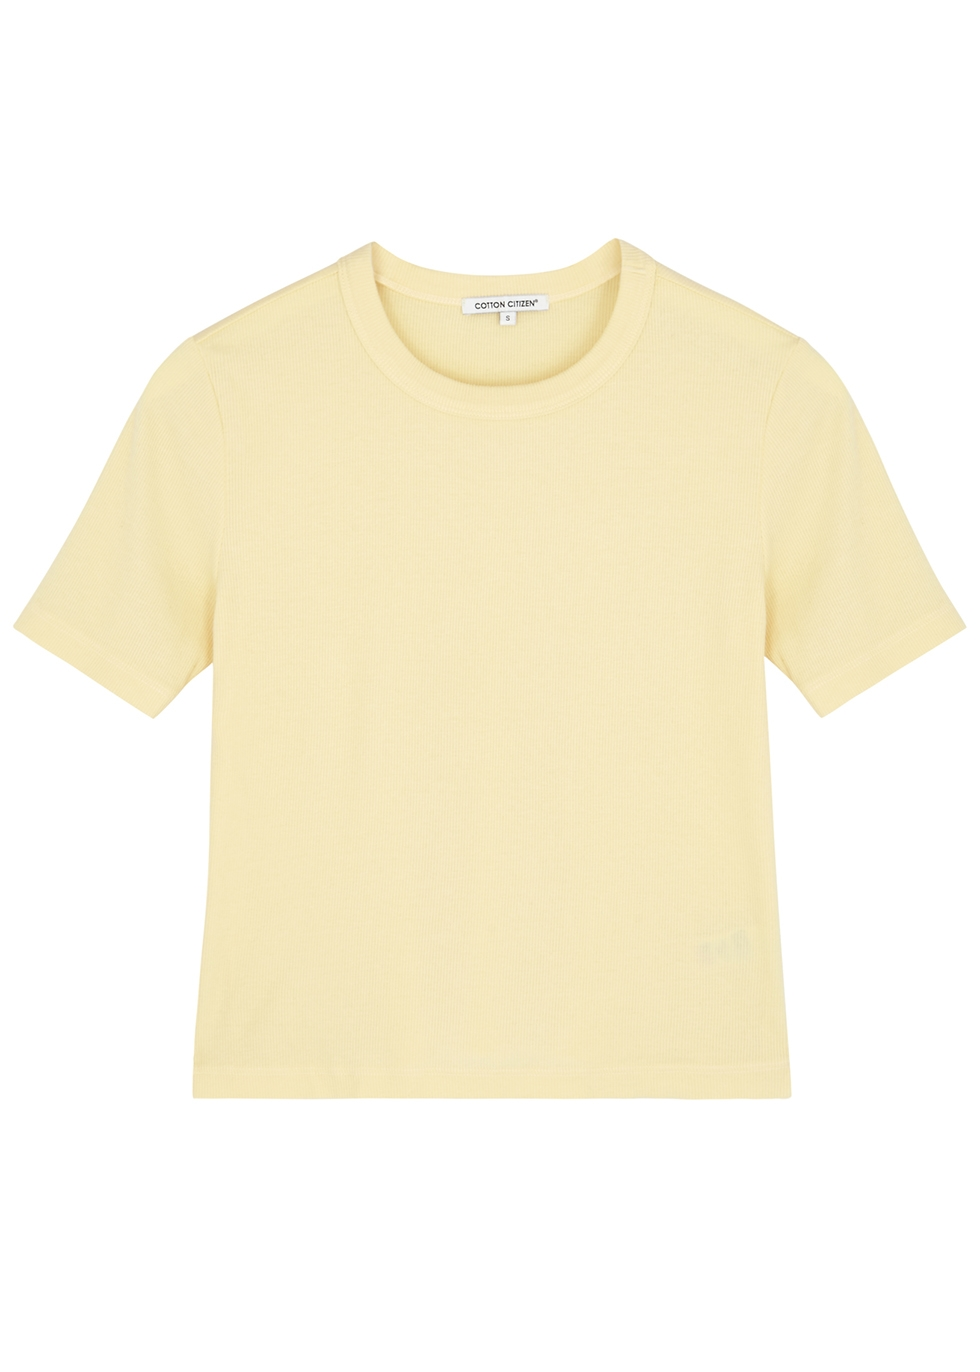 Verona yellow cotton-blend T-shirt - Cotton Citizen